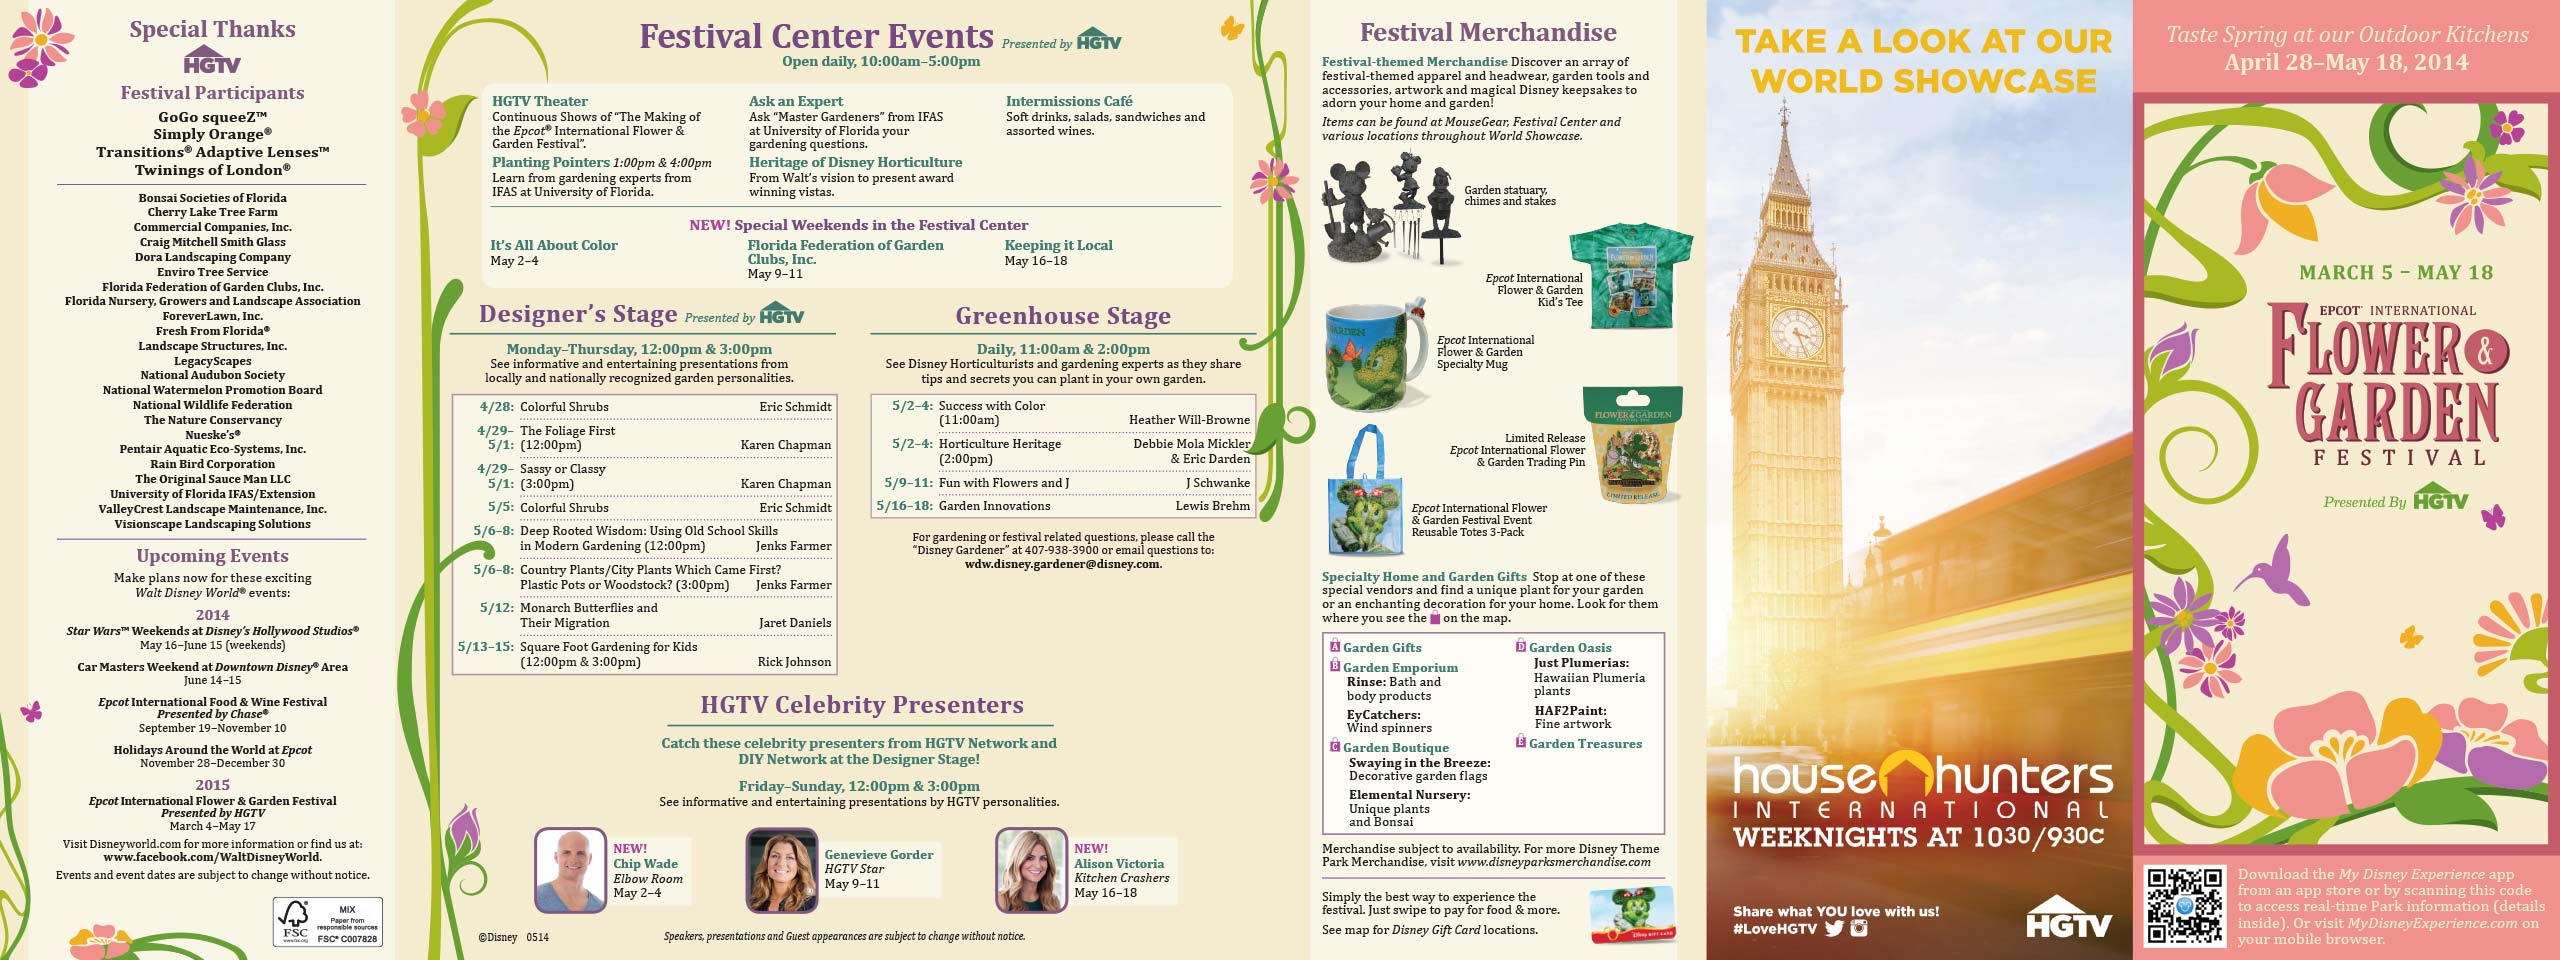 2014 epcot flower and garden festival guide map may edition - photo